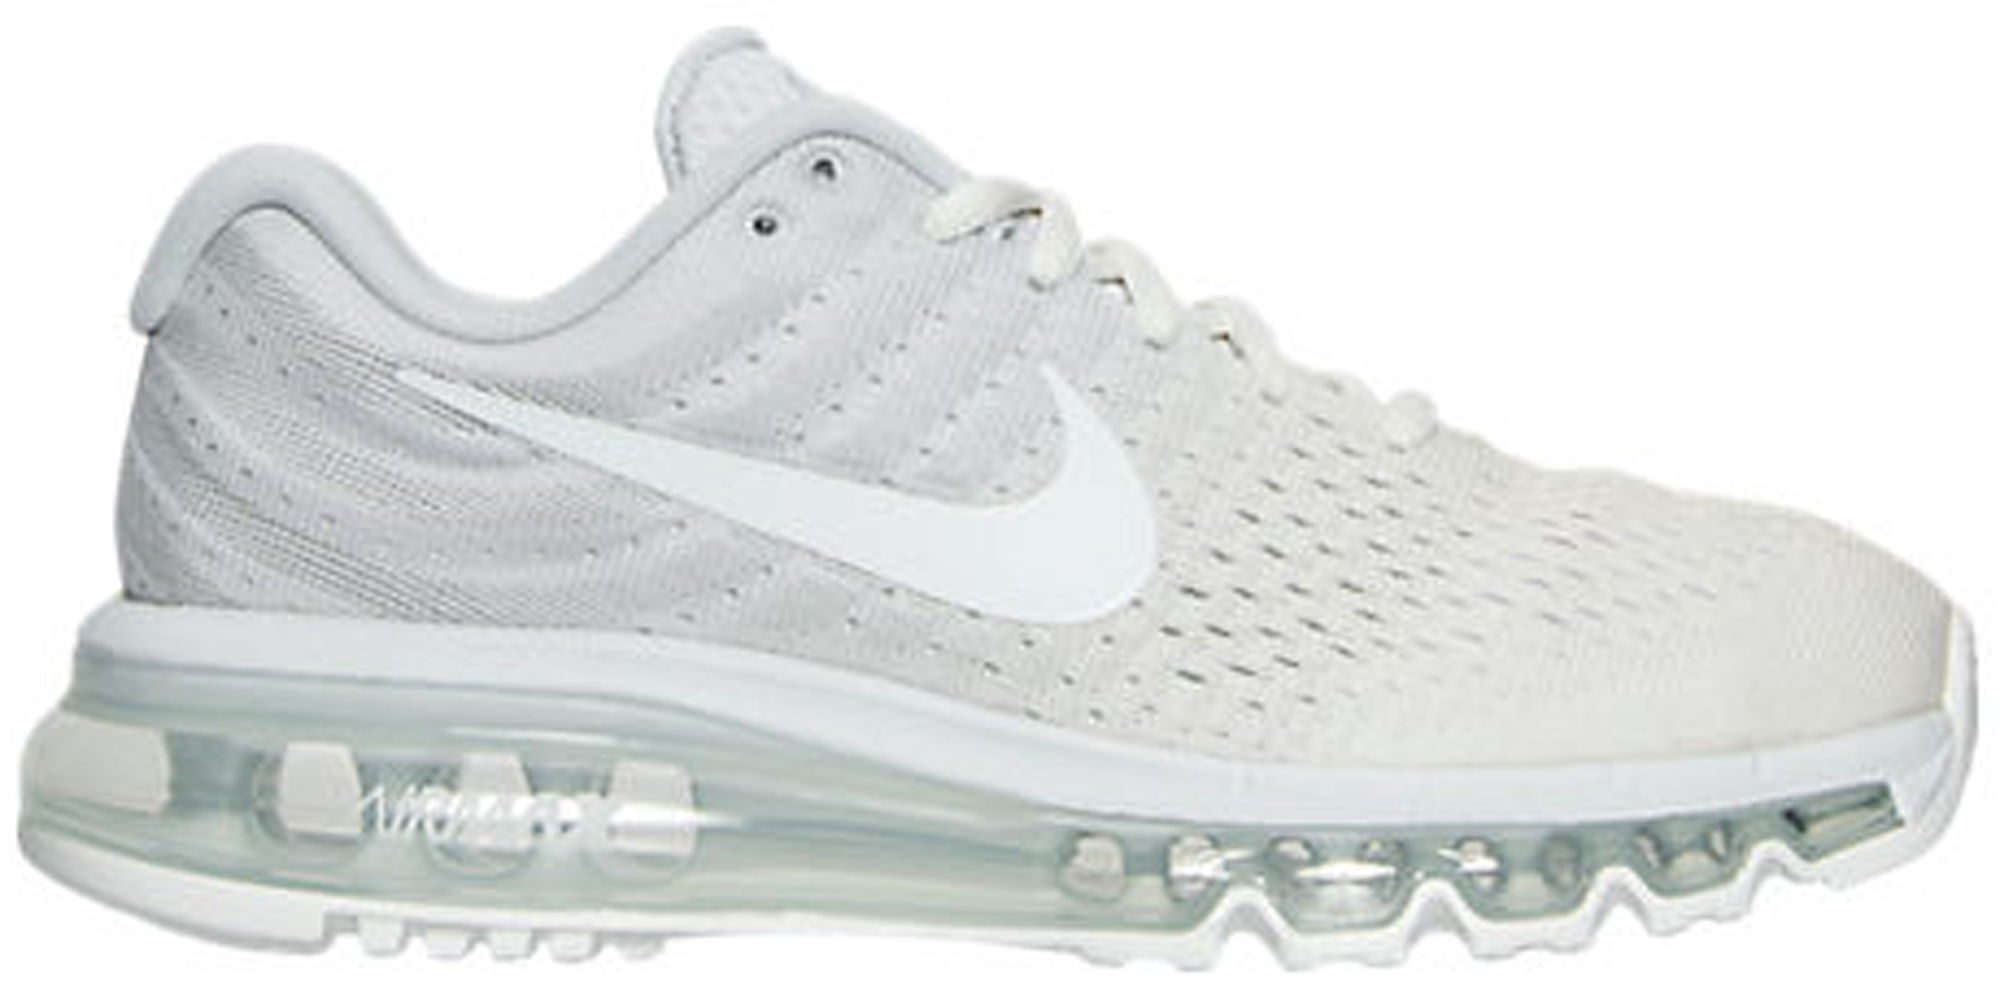 Nike Air Max 2017 Laufschuhe Nike Air Max Pure Platinum